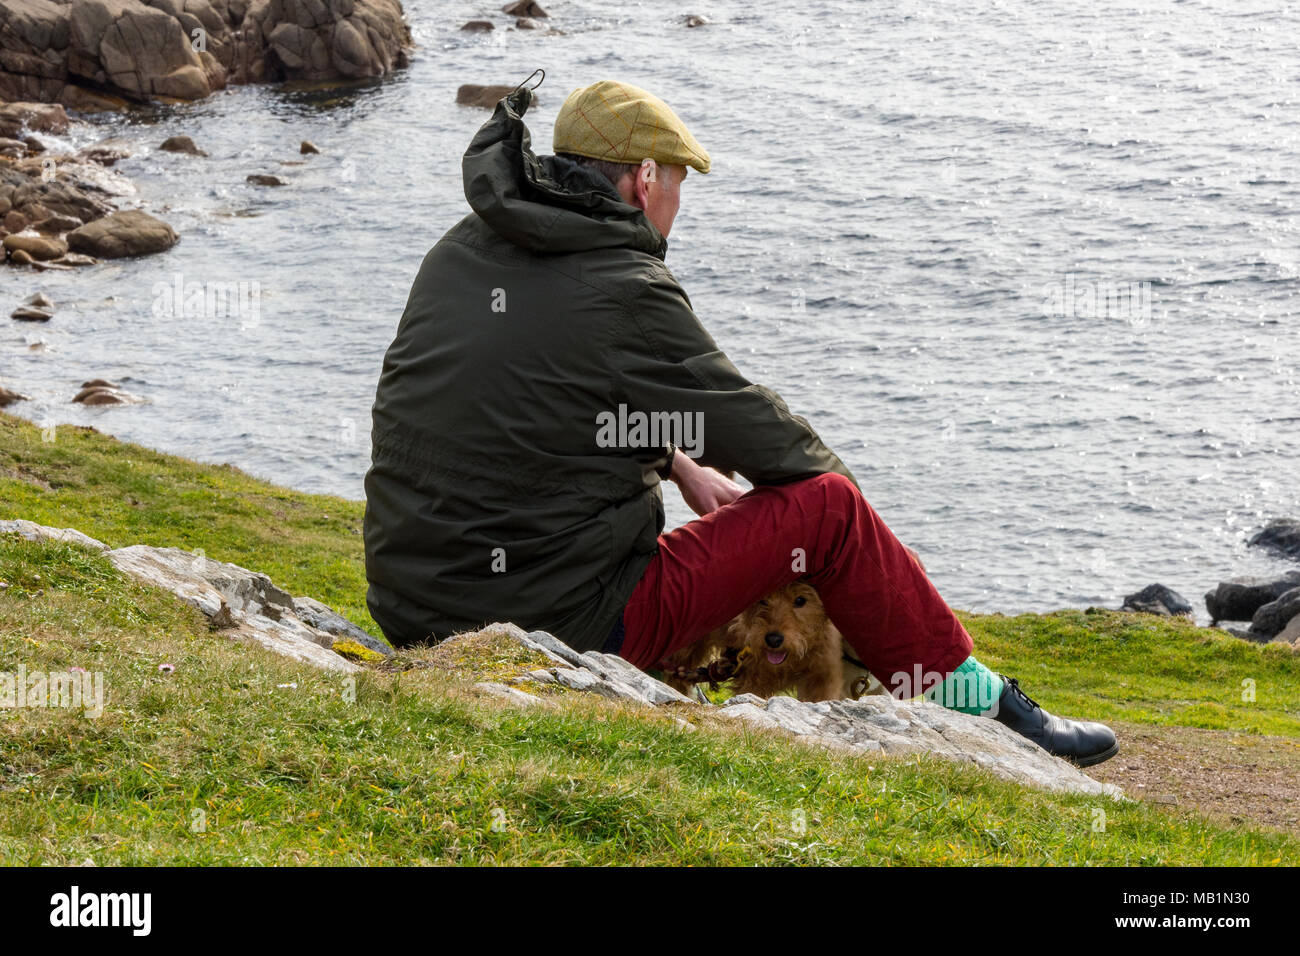 a man dressed in a flat cap and winter jacket sitting on the top of the cliffs with a small terrier dog looking out to see. Thinking walking the dog. - Stock Image